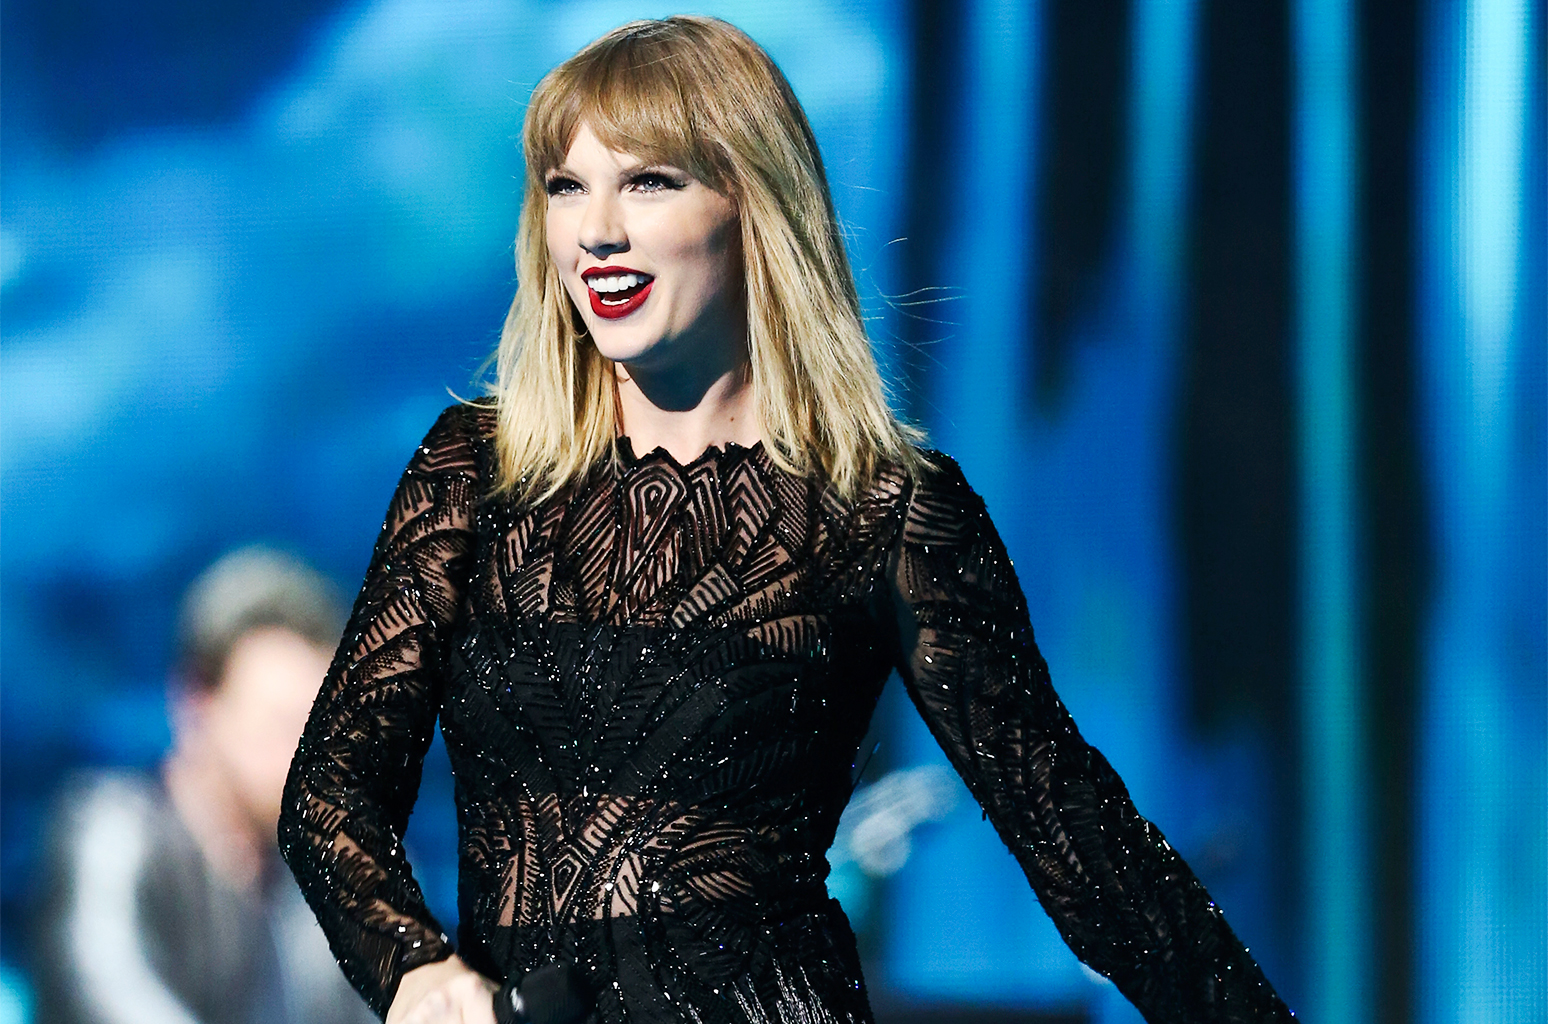 '15 minutes or 15 years': Taylor Swift on our victim-blaming culture